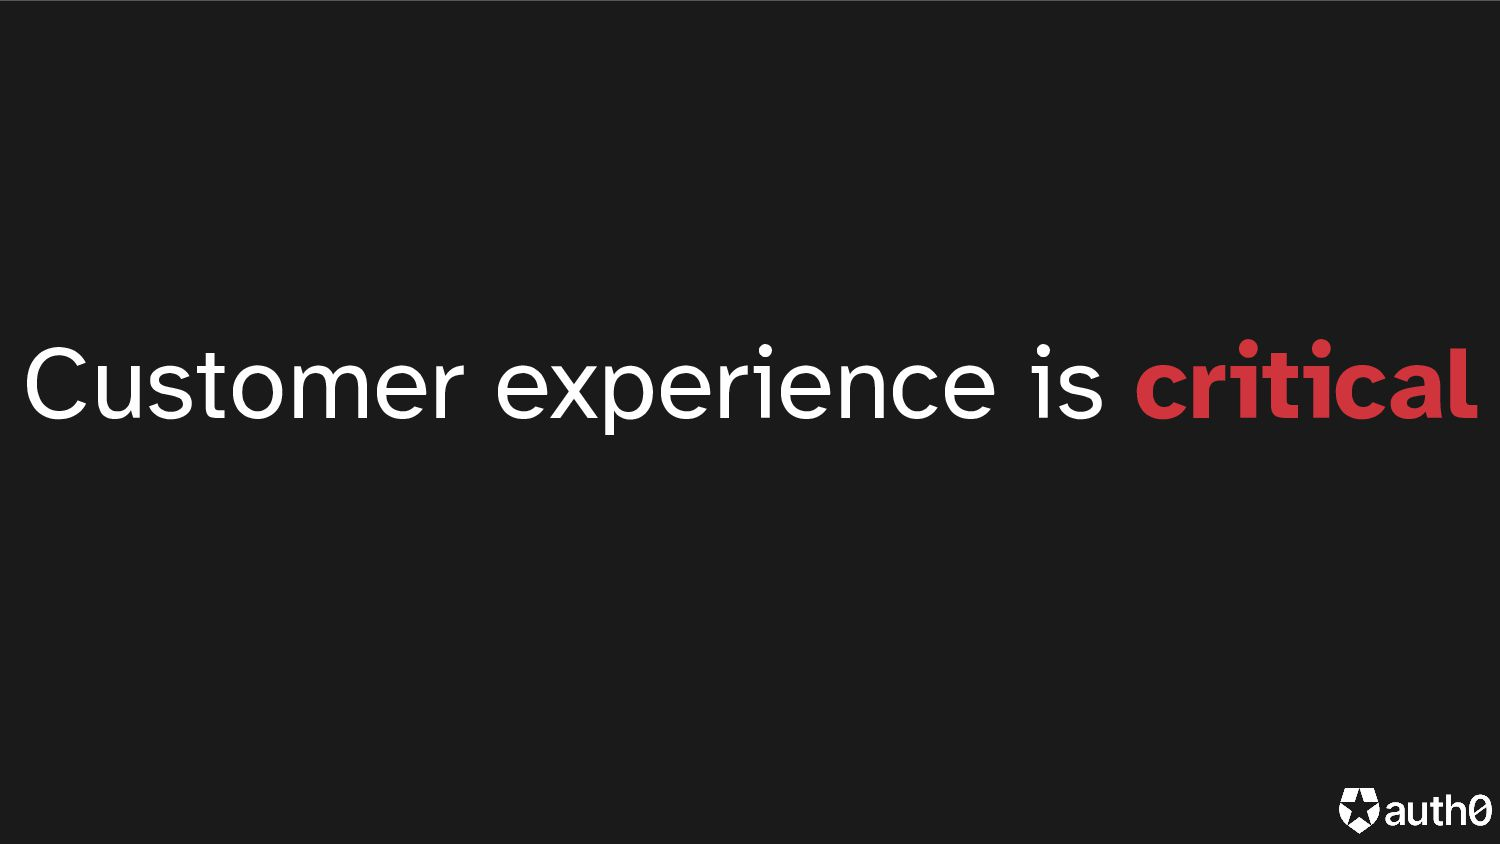 Customer experience is critical